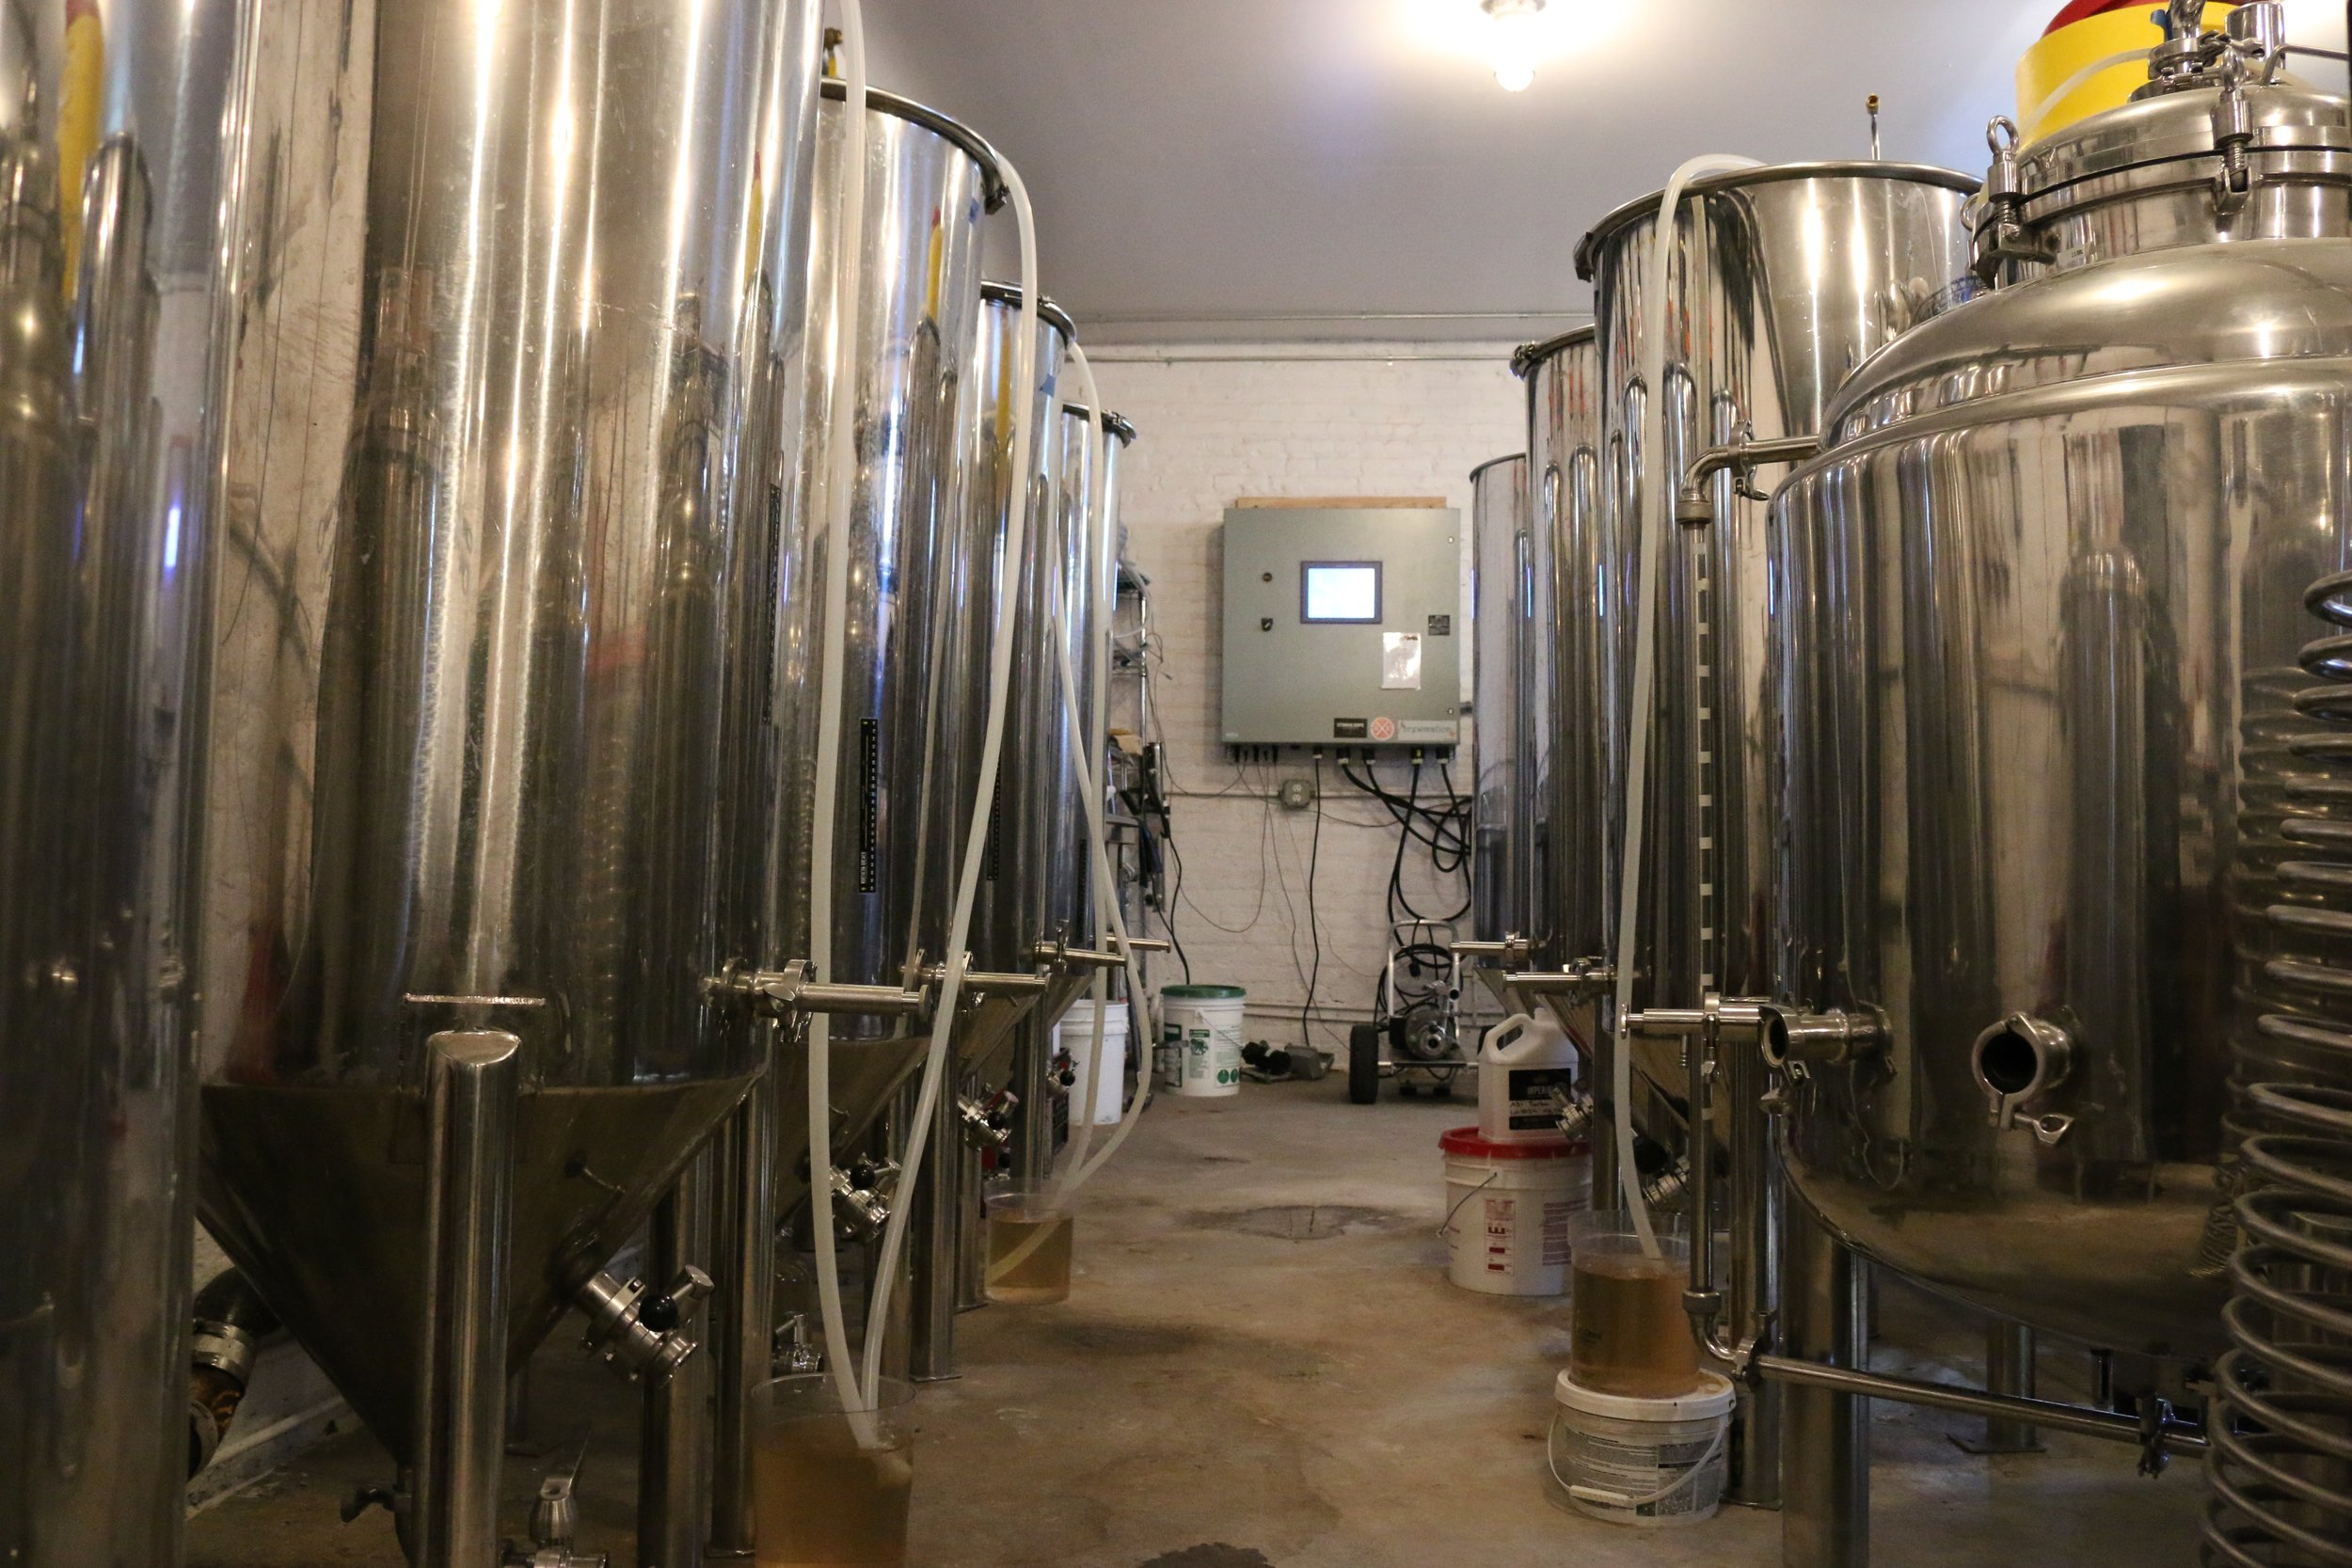 Join us Saturdays at 2pm for a tour of the brewery. Tour includes a tasting of your choice. $5